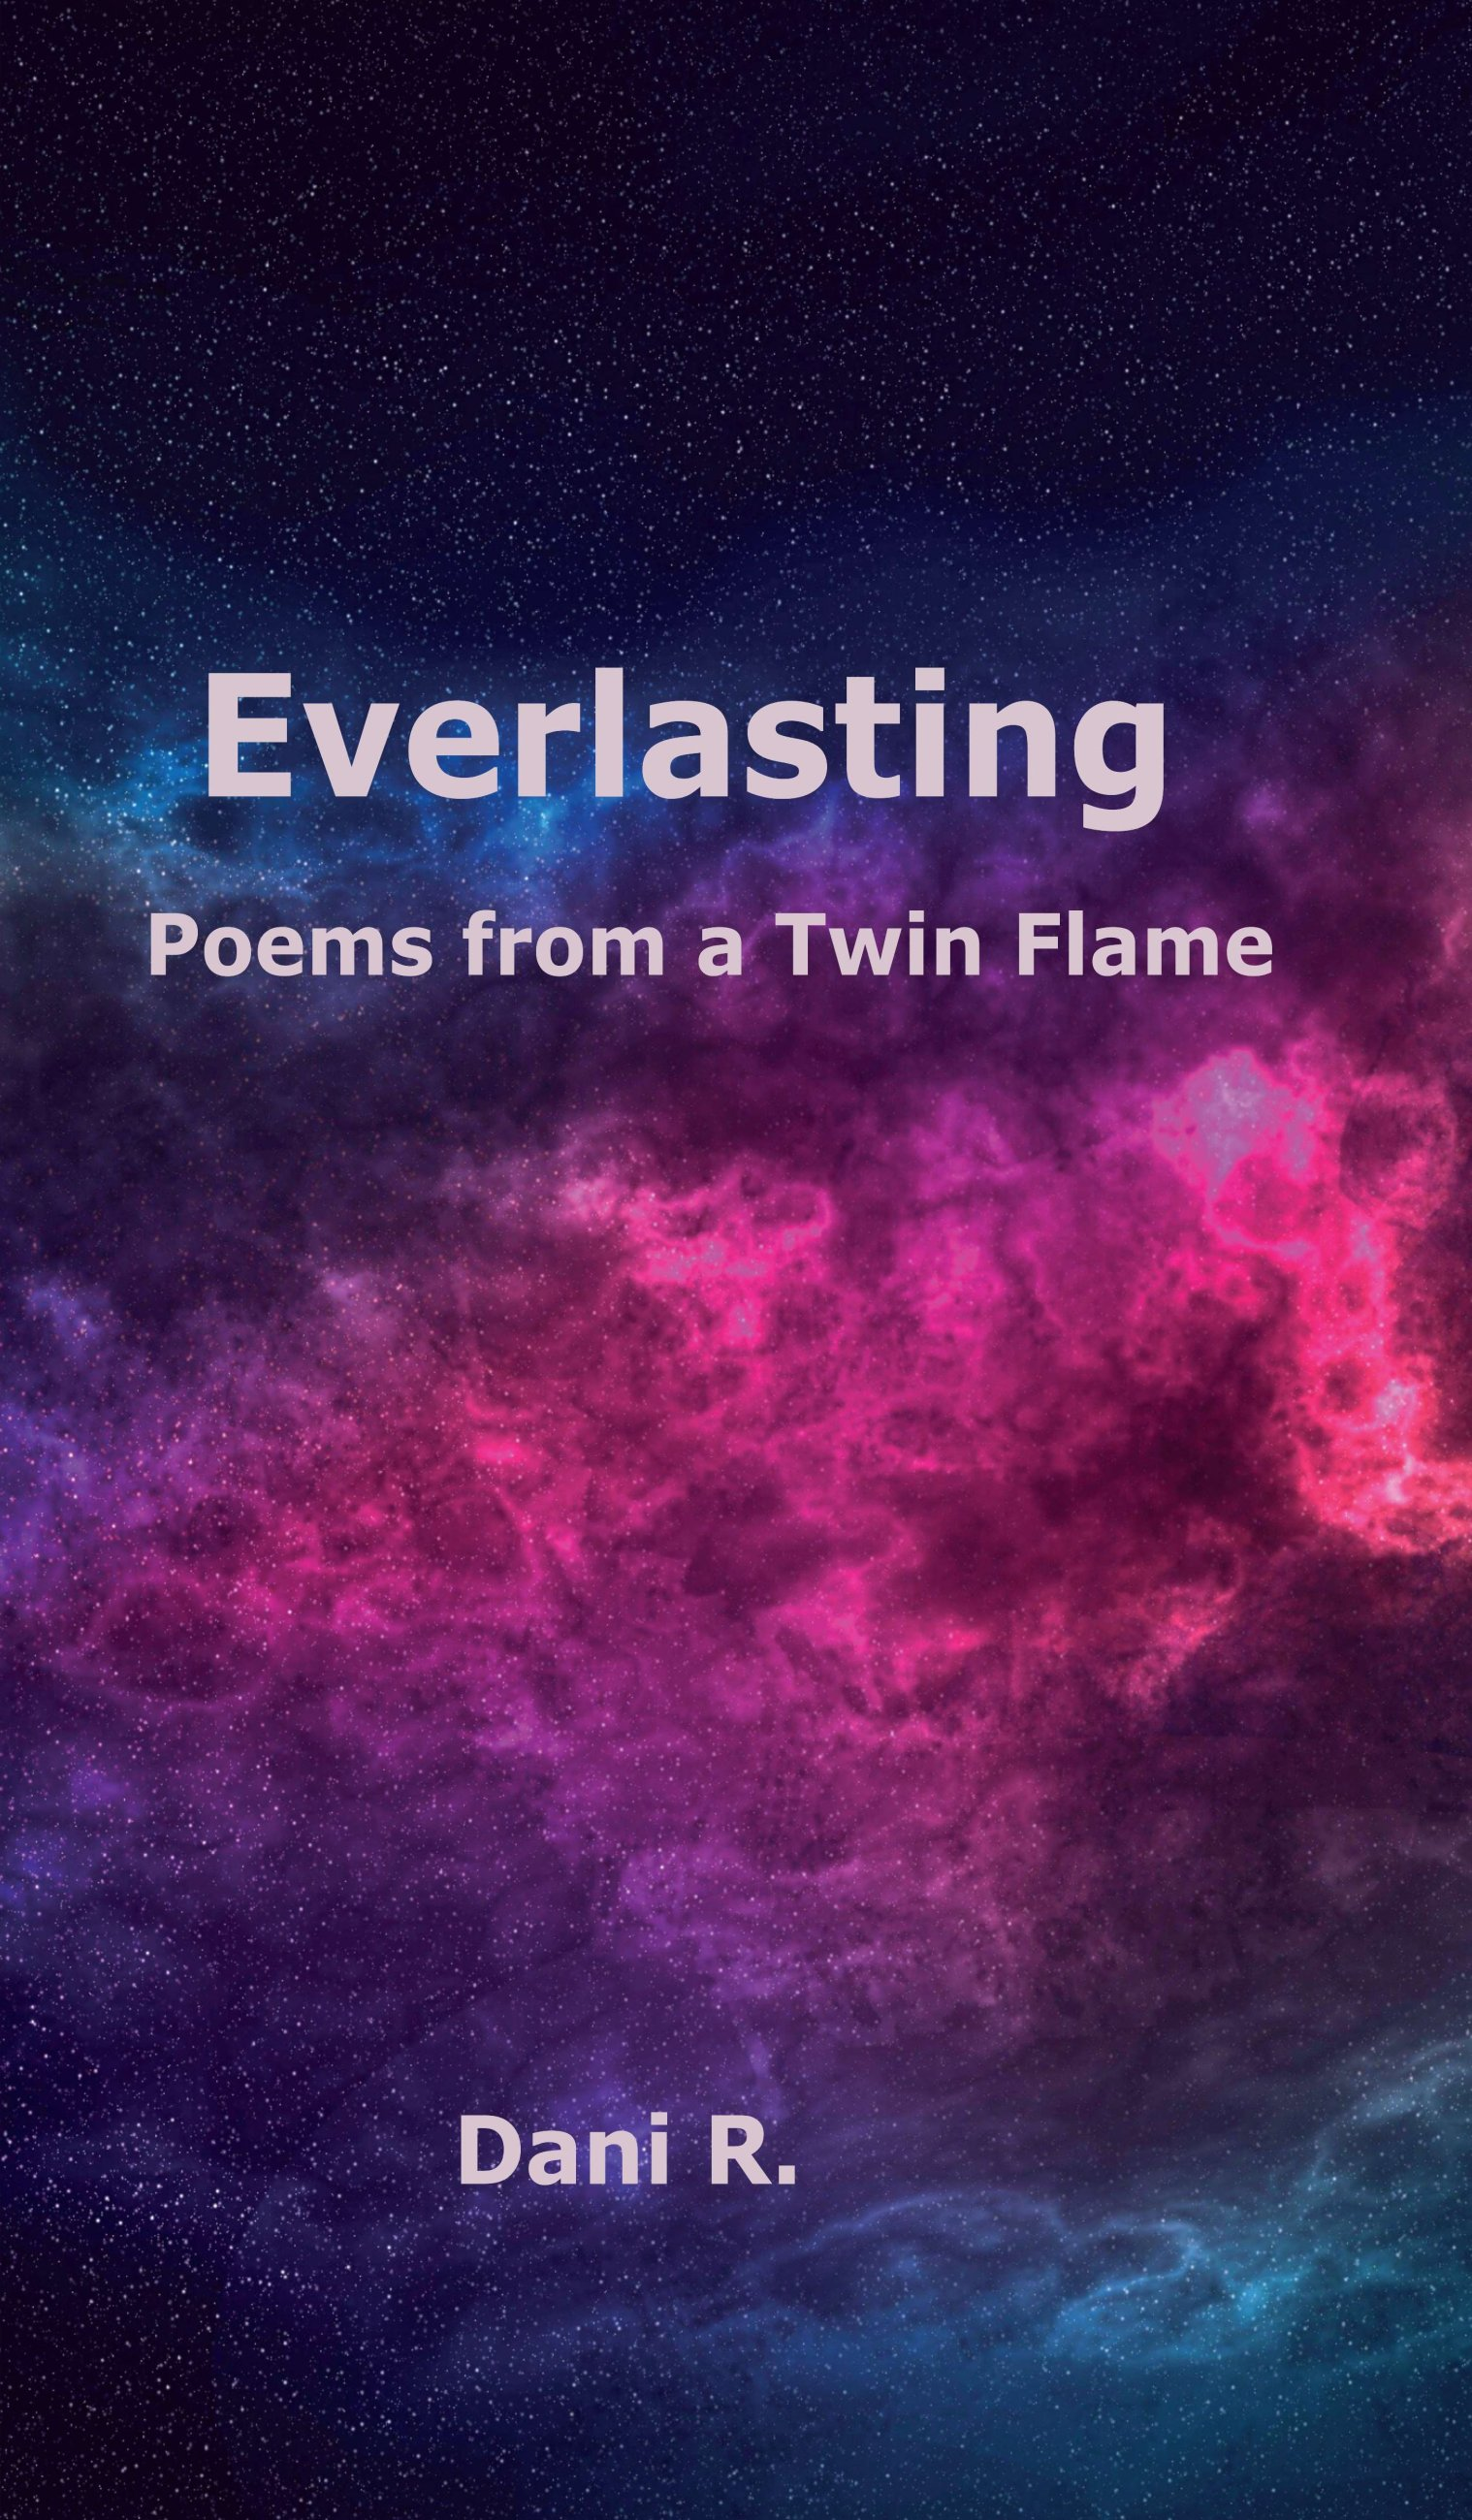 Everlasting - Poems from a Twin Flame - Romantic poetry collection